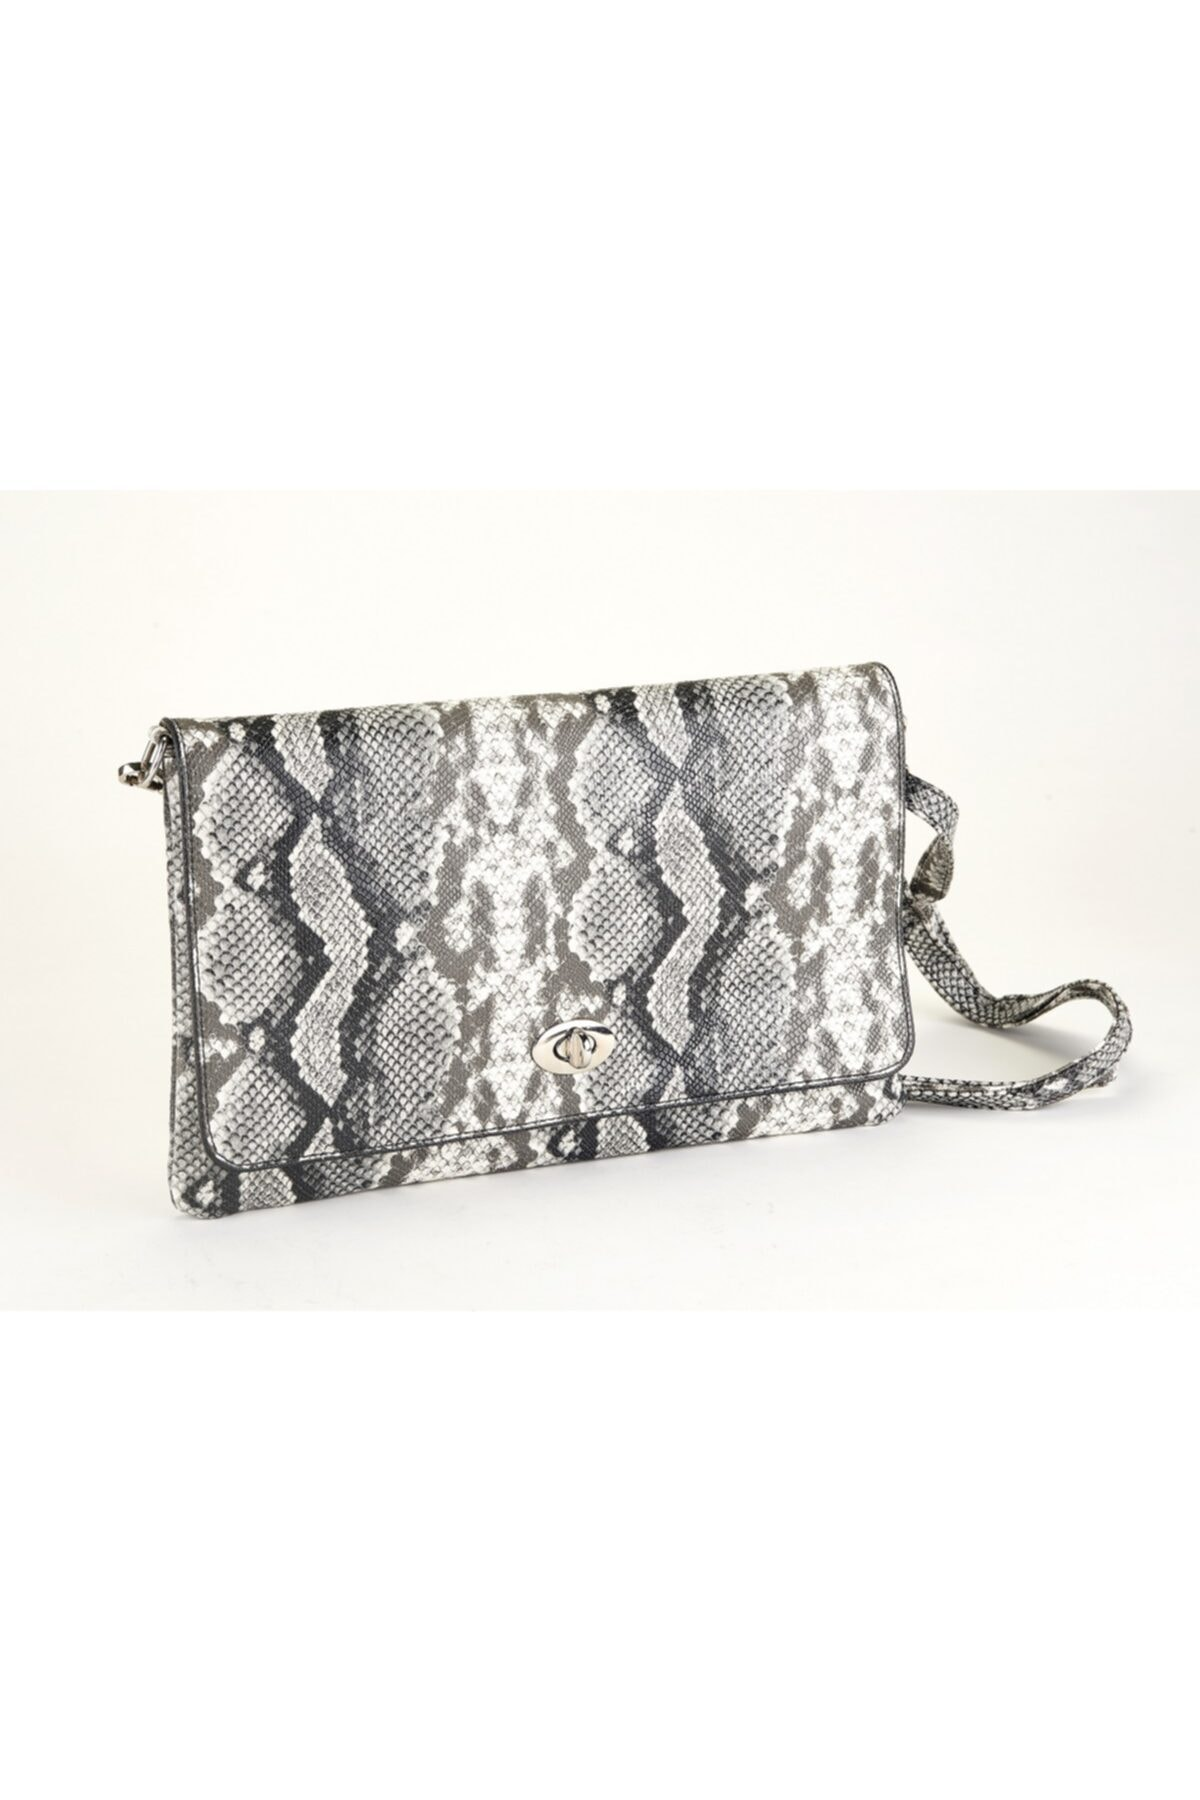 Coquet Accessories Siyah Beyaz Bellini Clutch 1